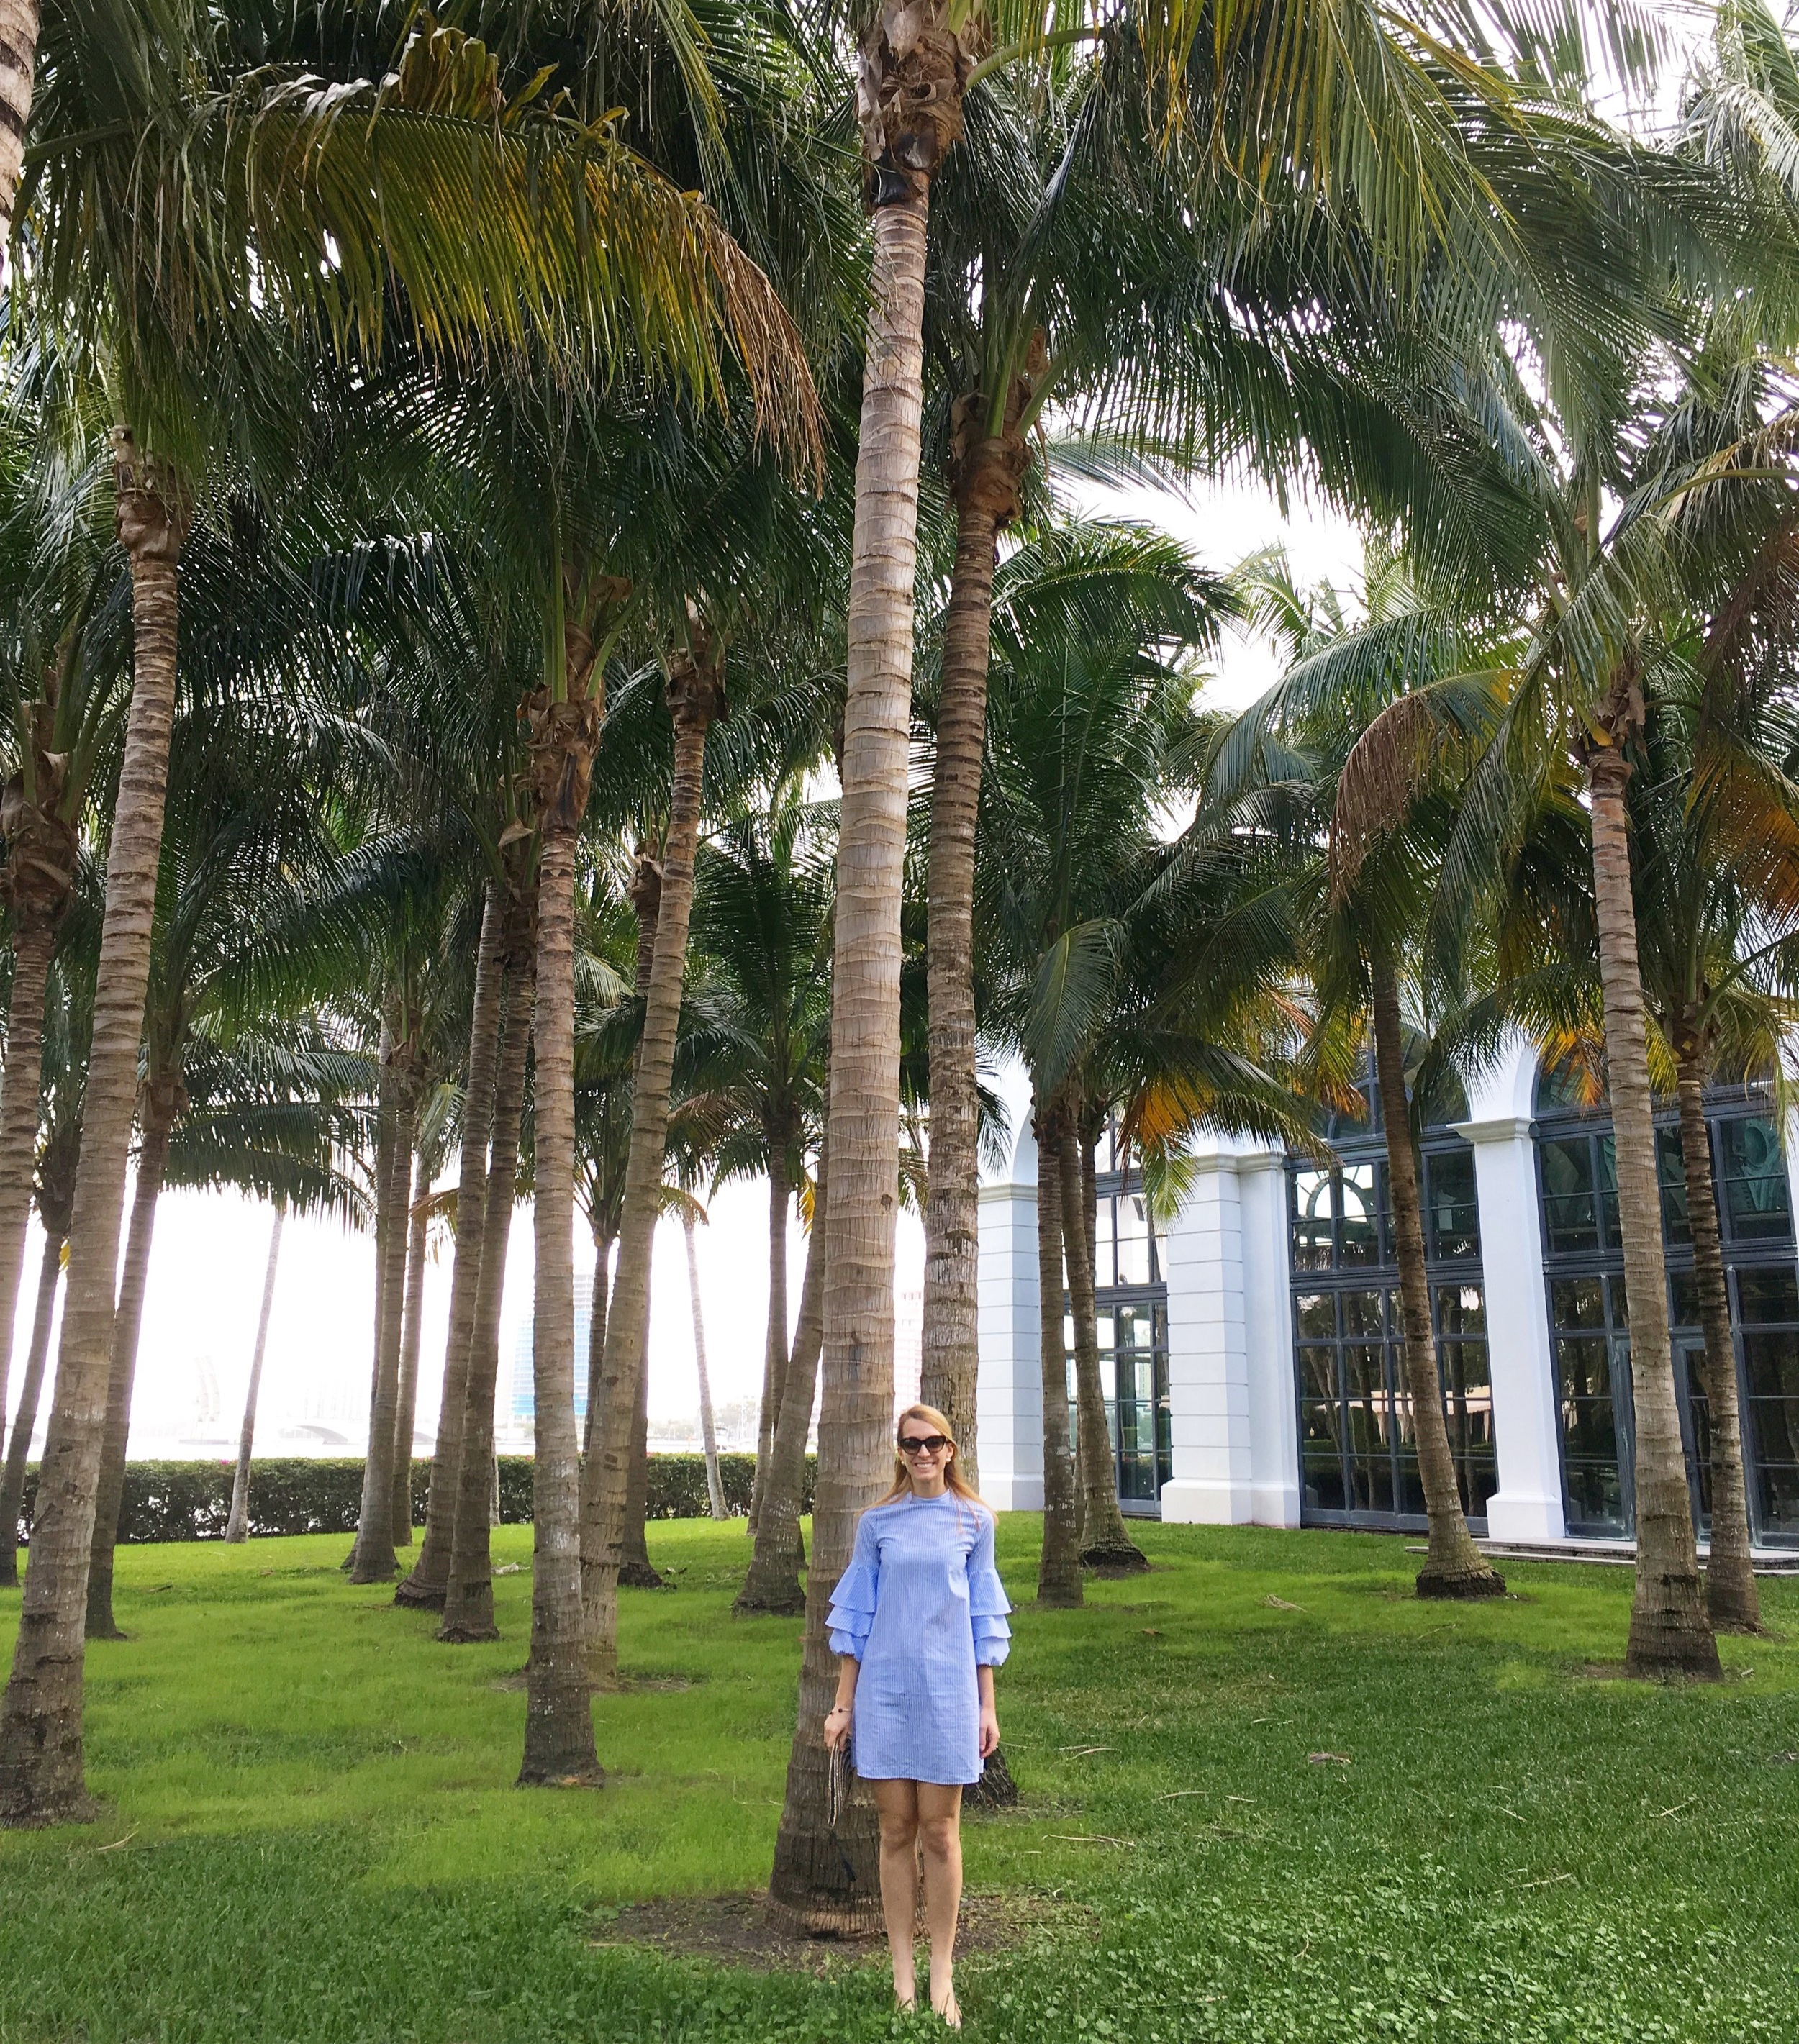 Lydia+Marie+Elizabeth+at+the+Flaggler+Museum+in+Palm+beach